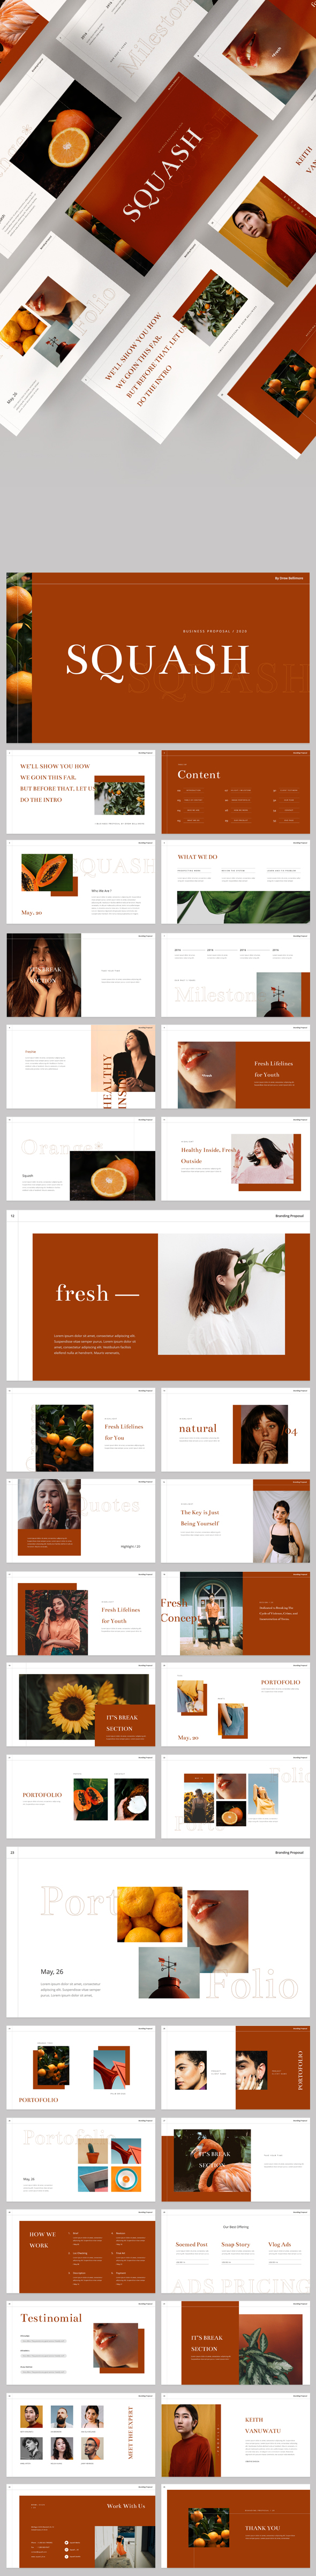 Squash Powerpoint Template